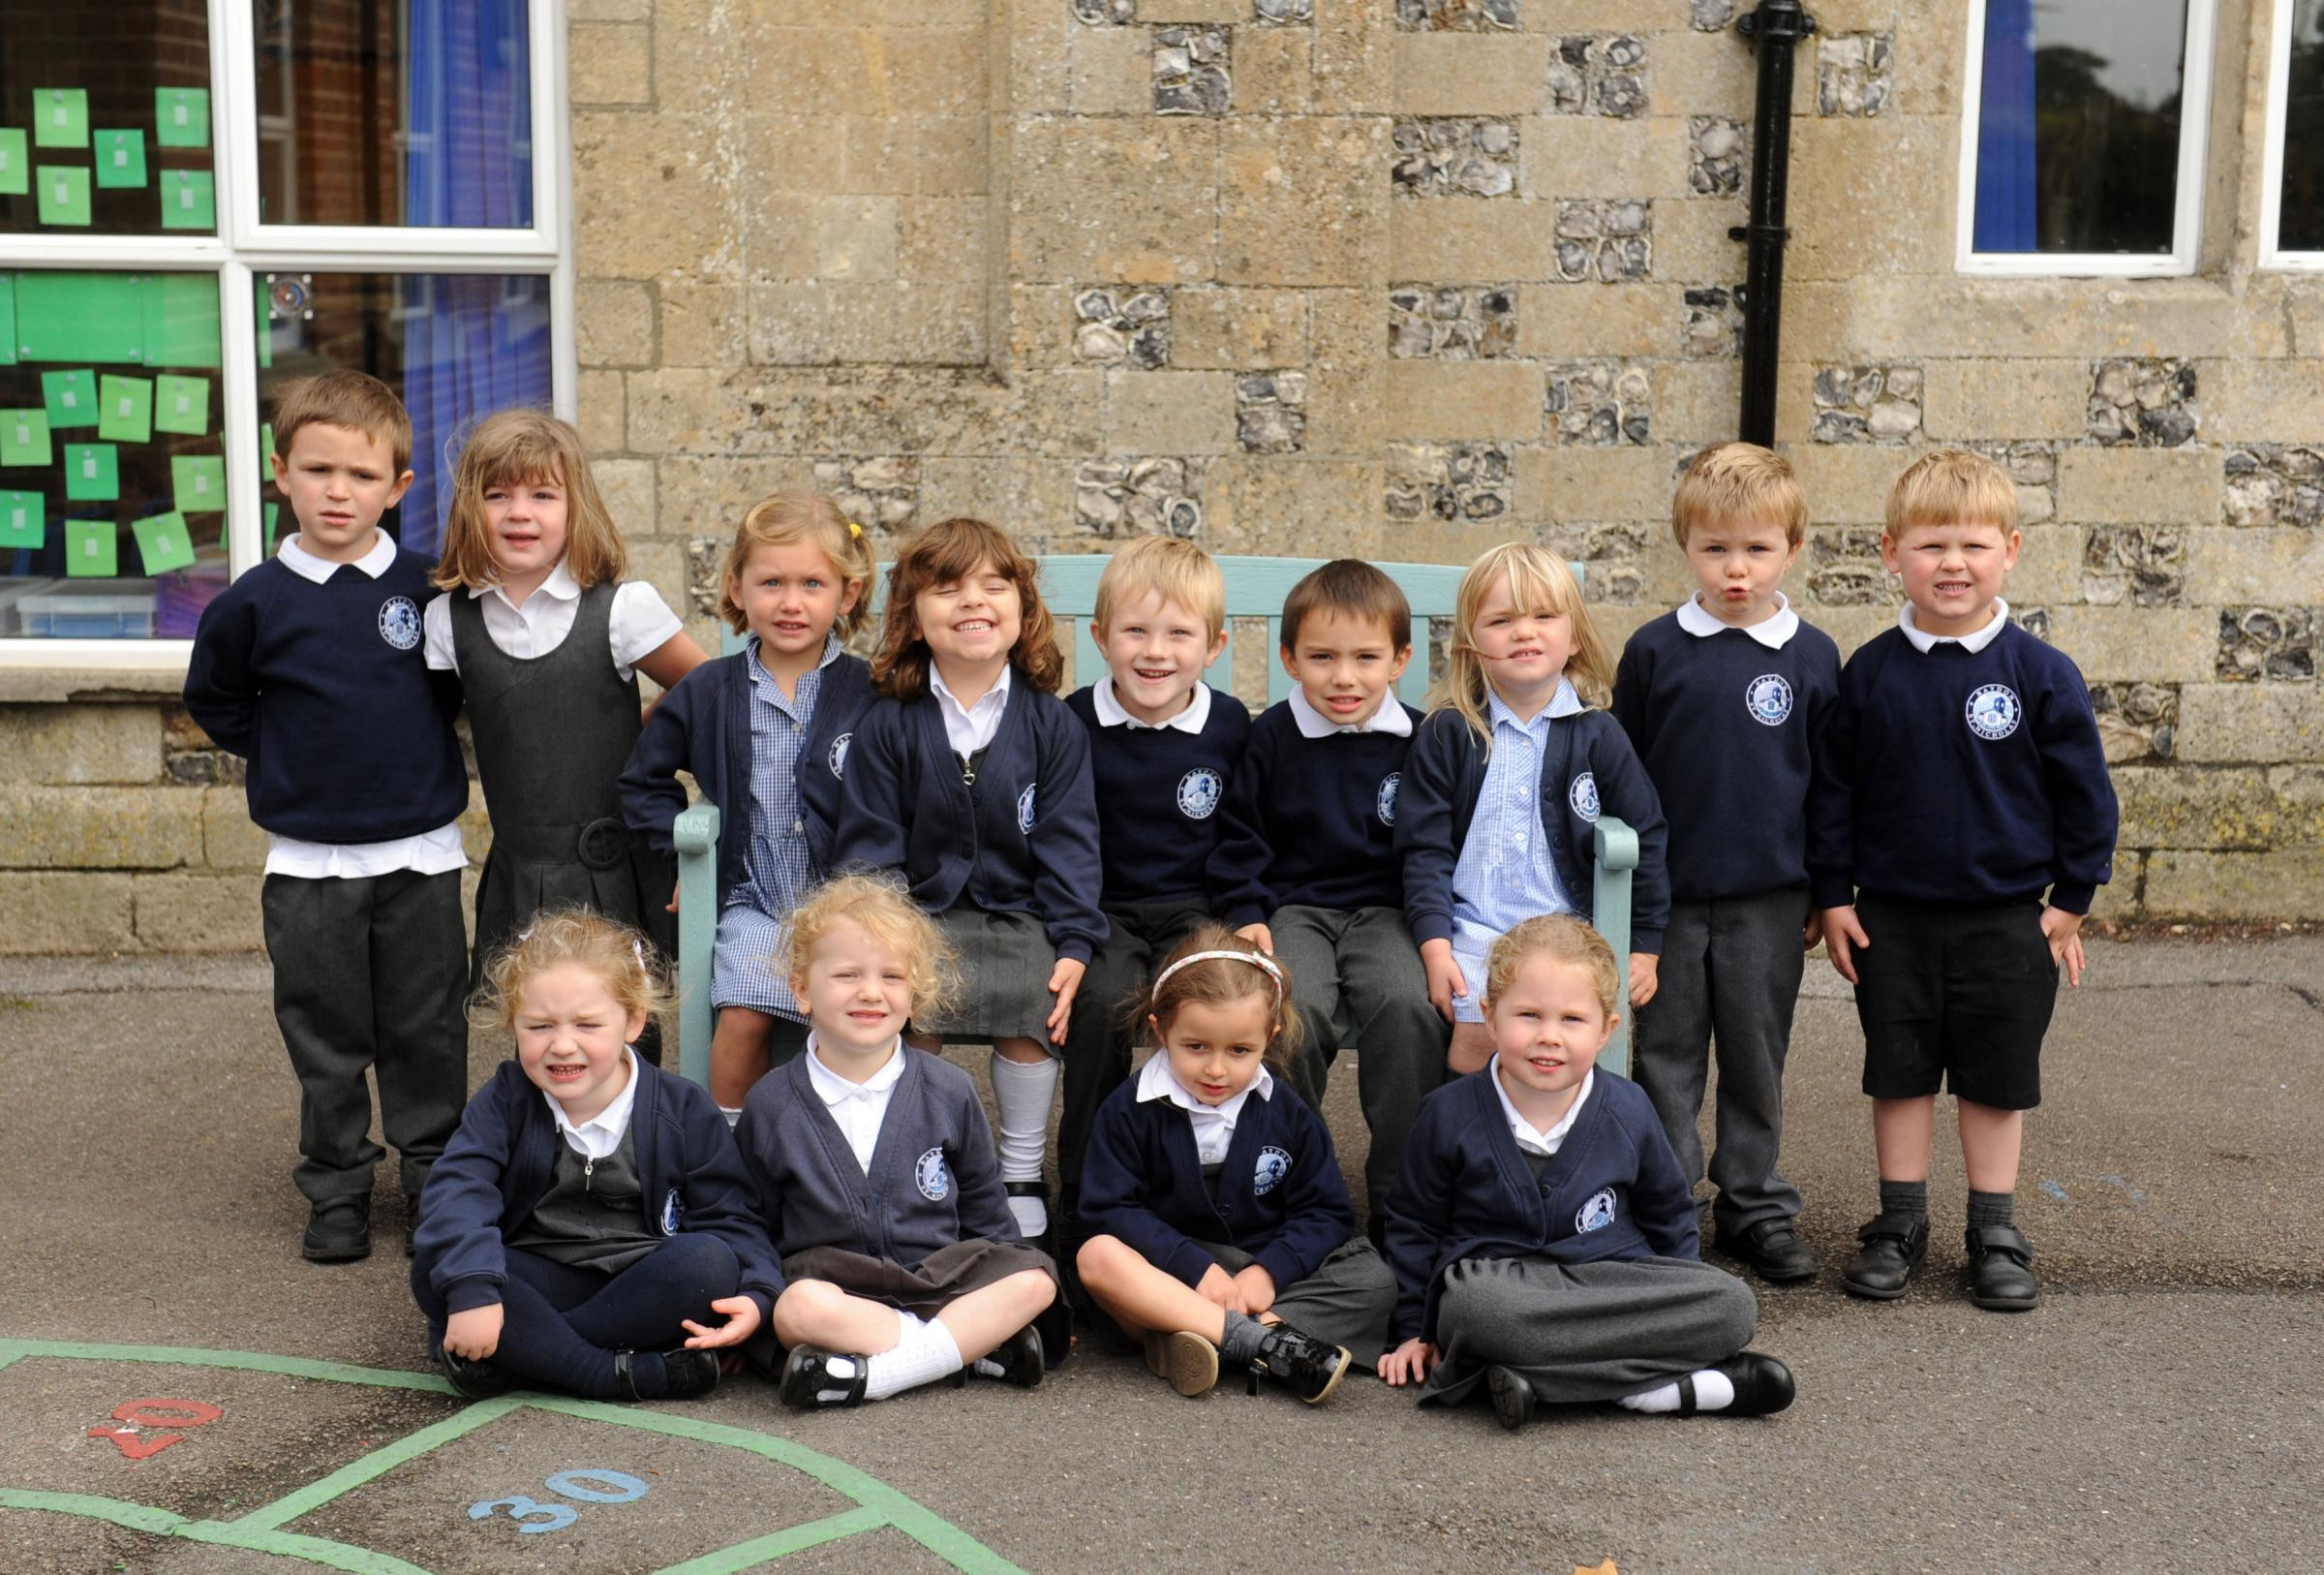 Baydon St Nicholas reception class for 1st day at school photos.Siobhan Boyle (SMB1243/1).